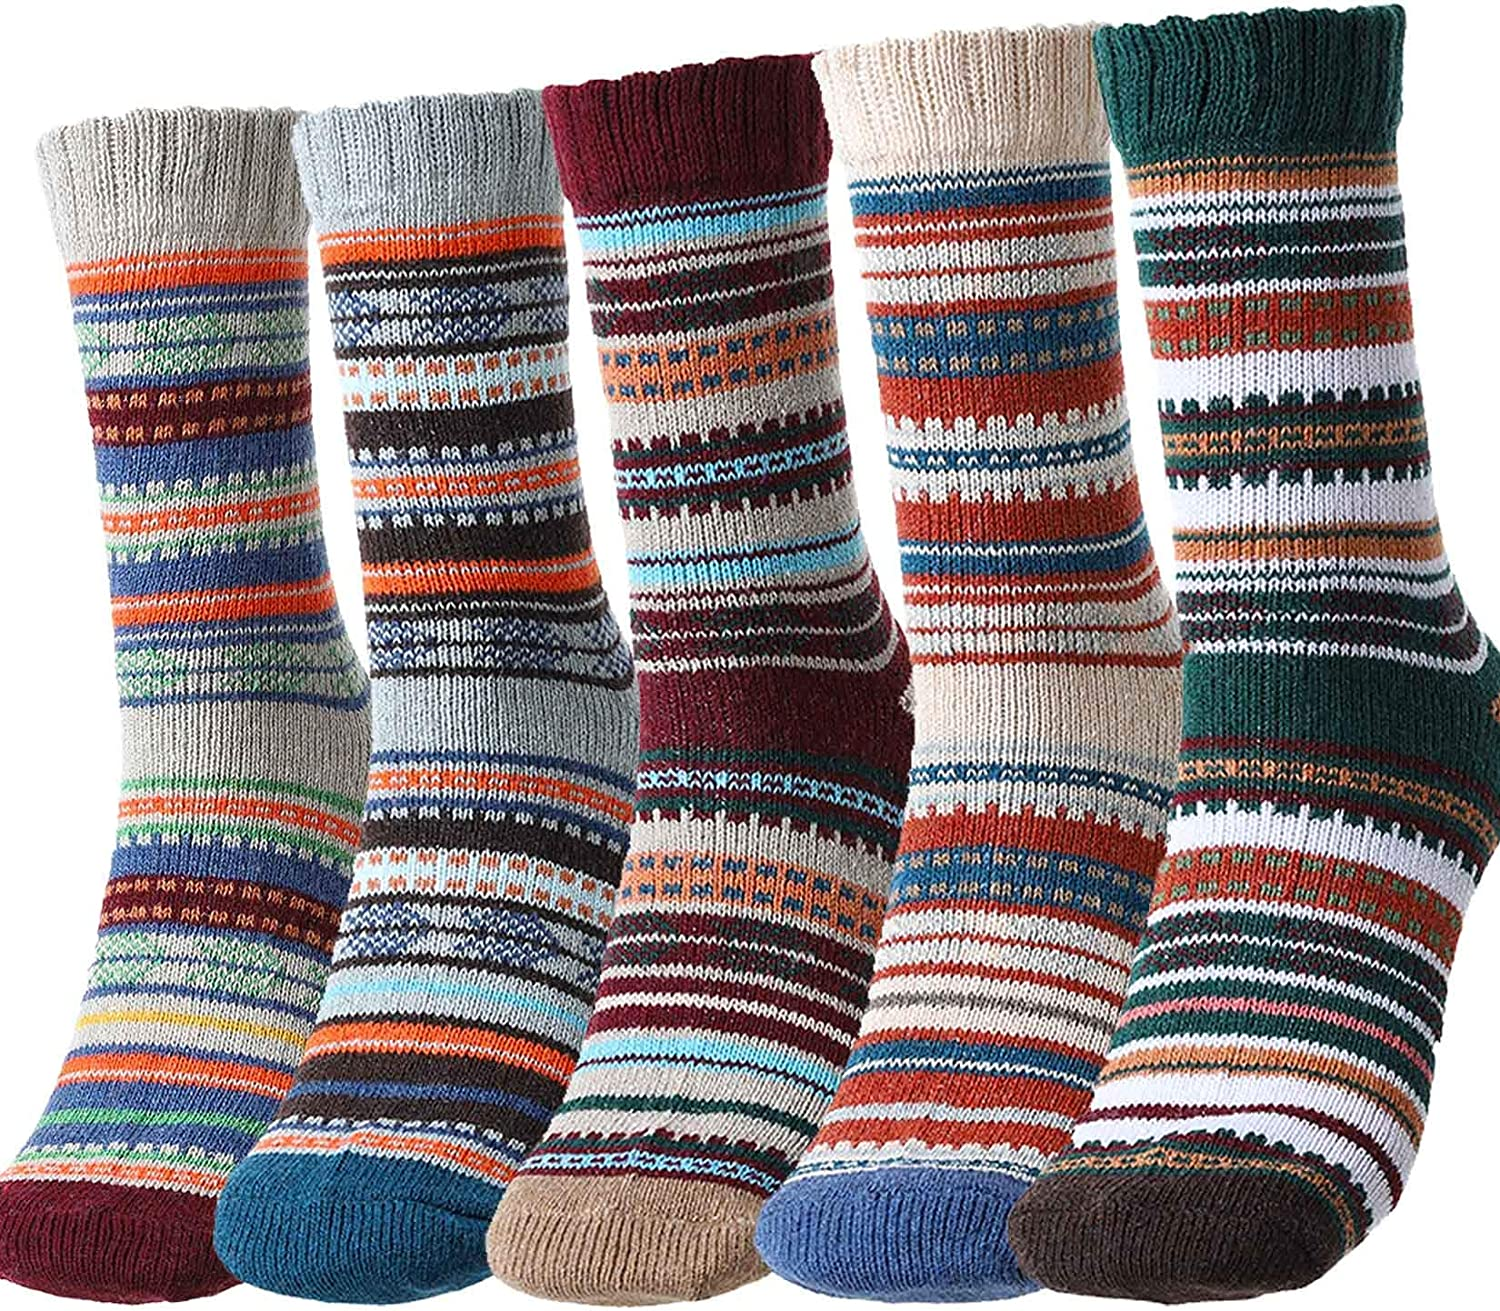 Campsis Nordic Socks Winter Thick Knit Crew Socks Multicolor Soft Cozy Polyester Socks Christmas Gifts for Men and Women (Pack of 5)